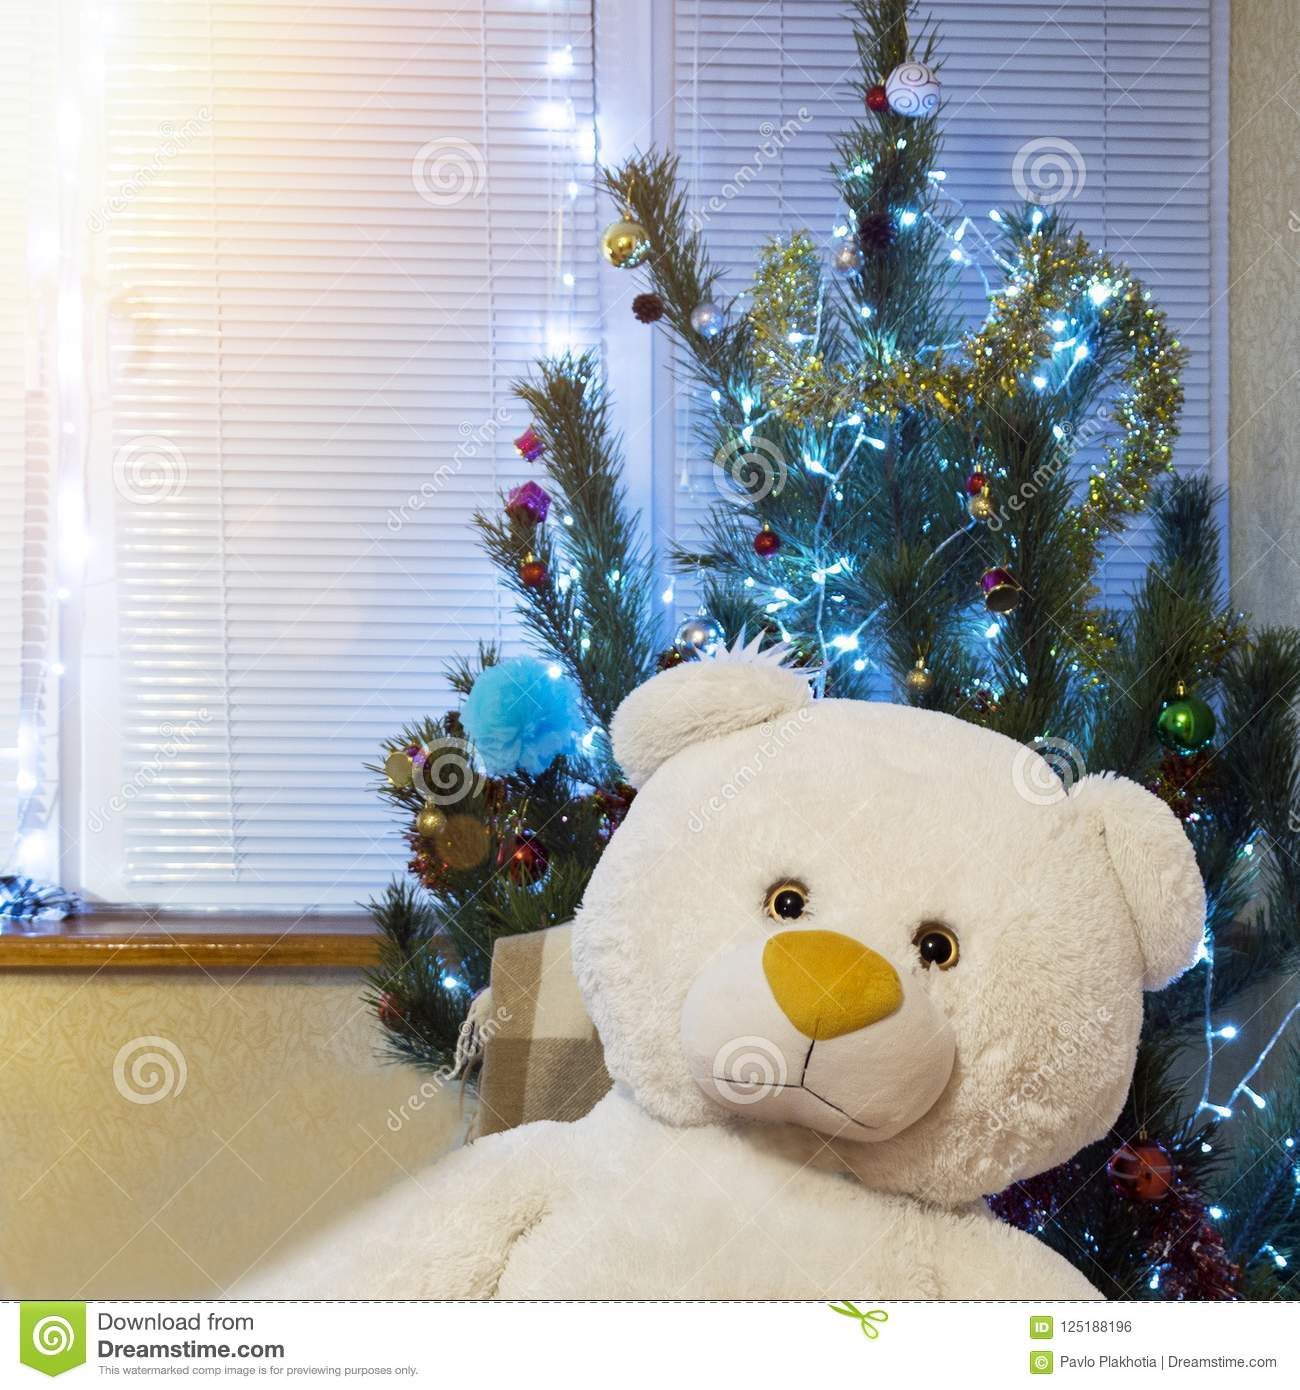 Decorated Christmas tree and big teddy bear. Cute New Year present under shining pine